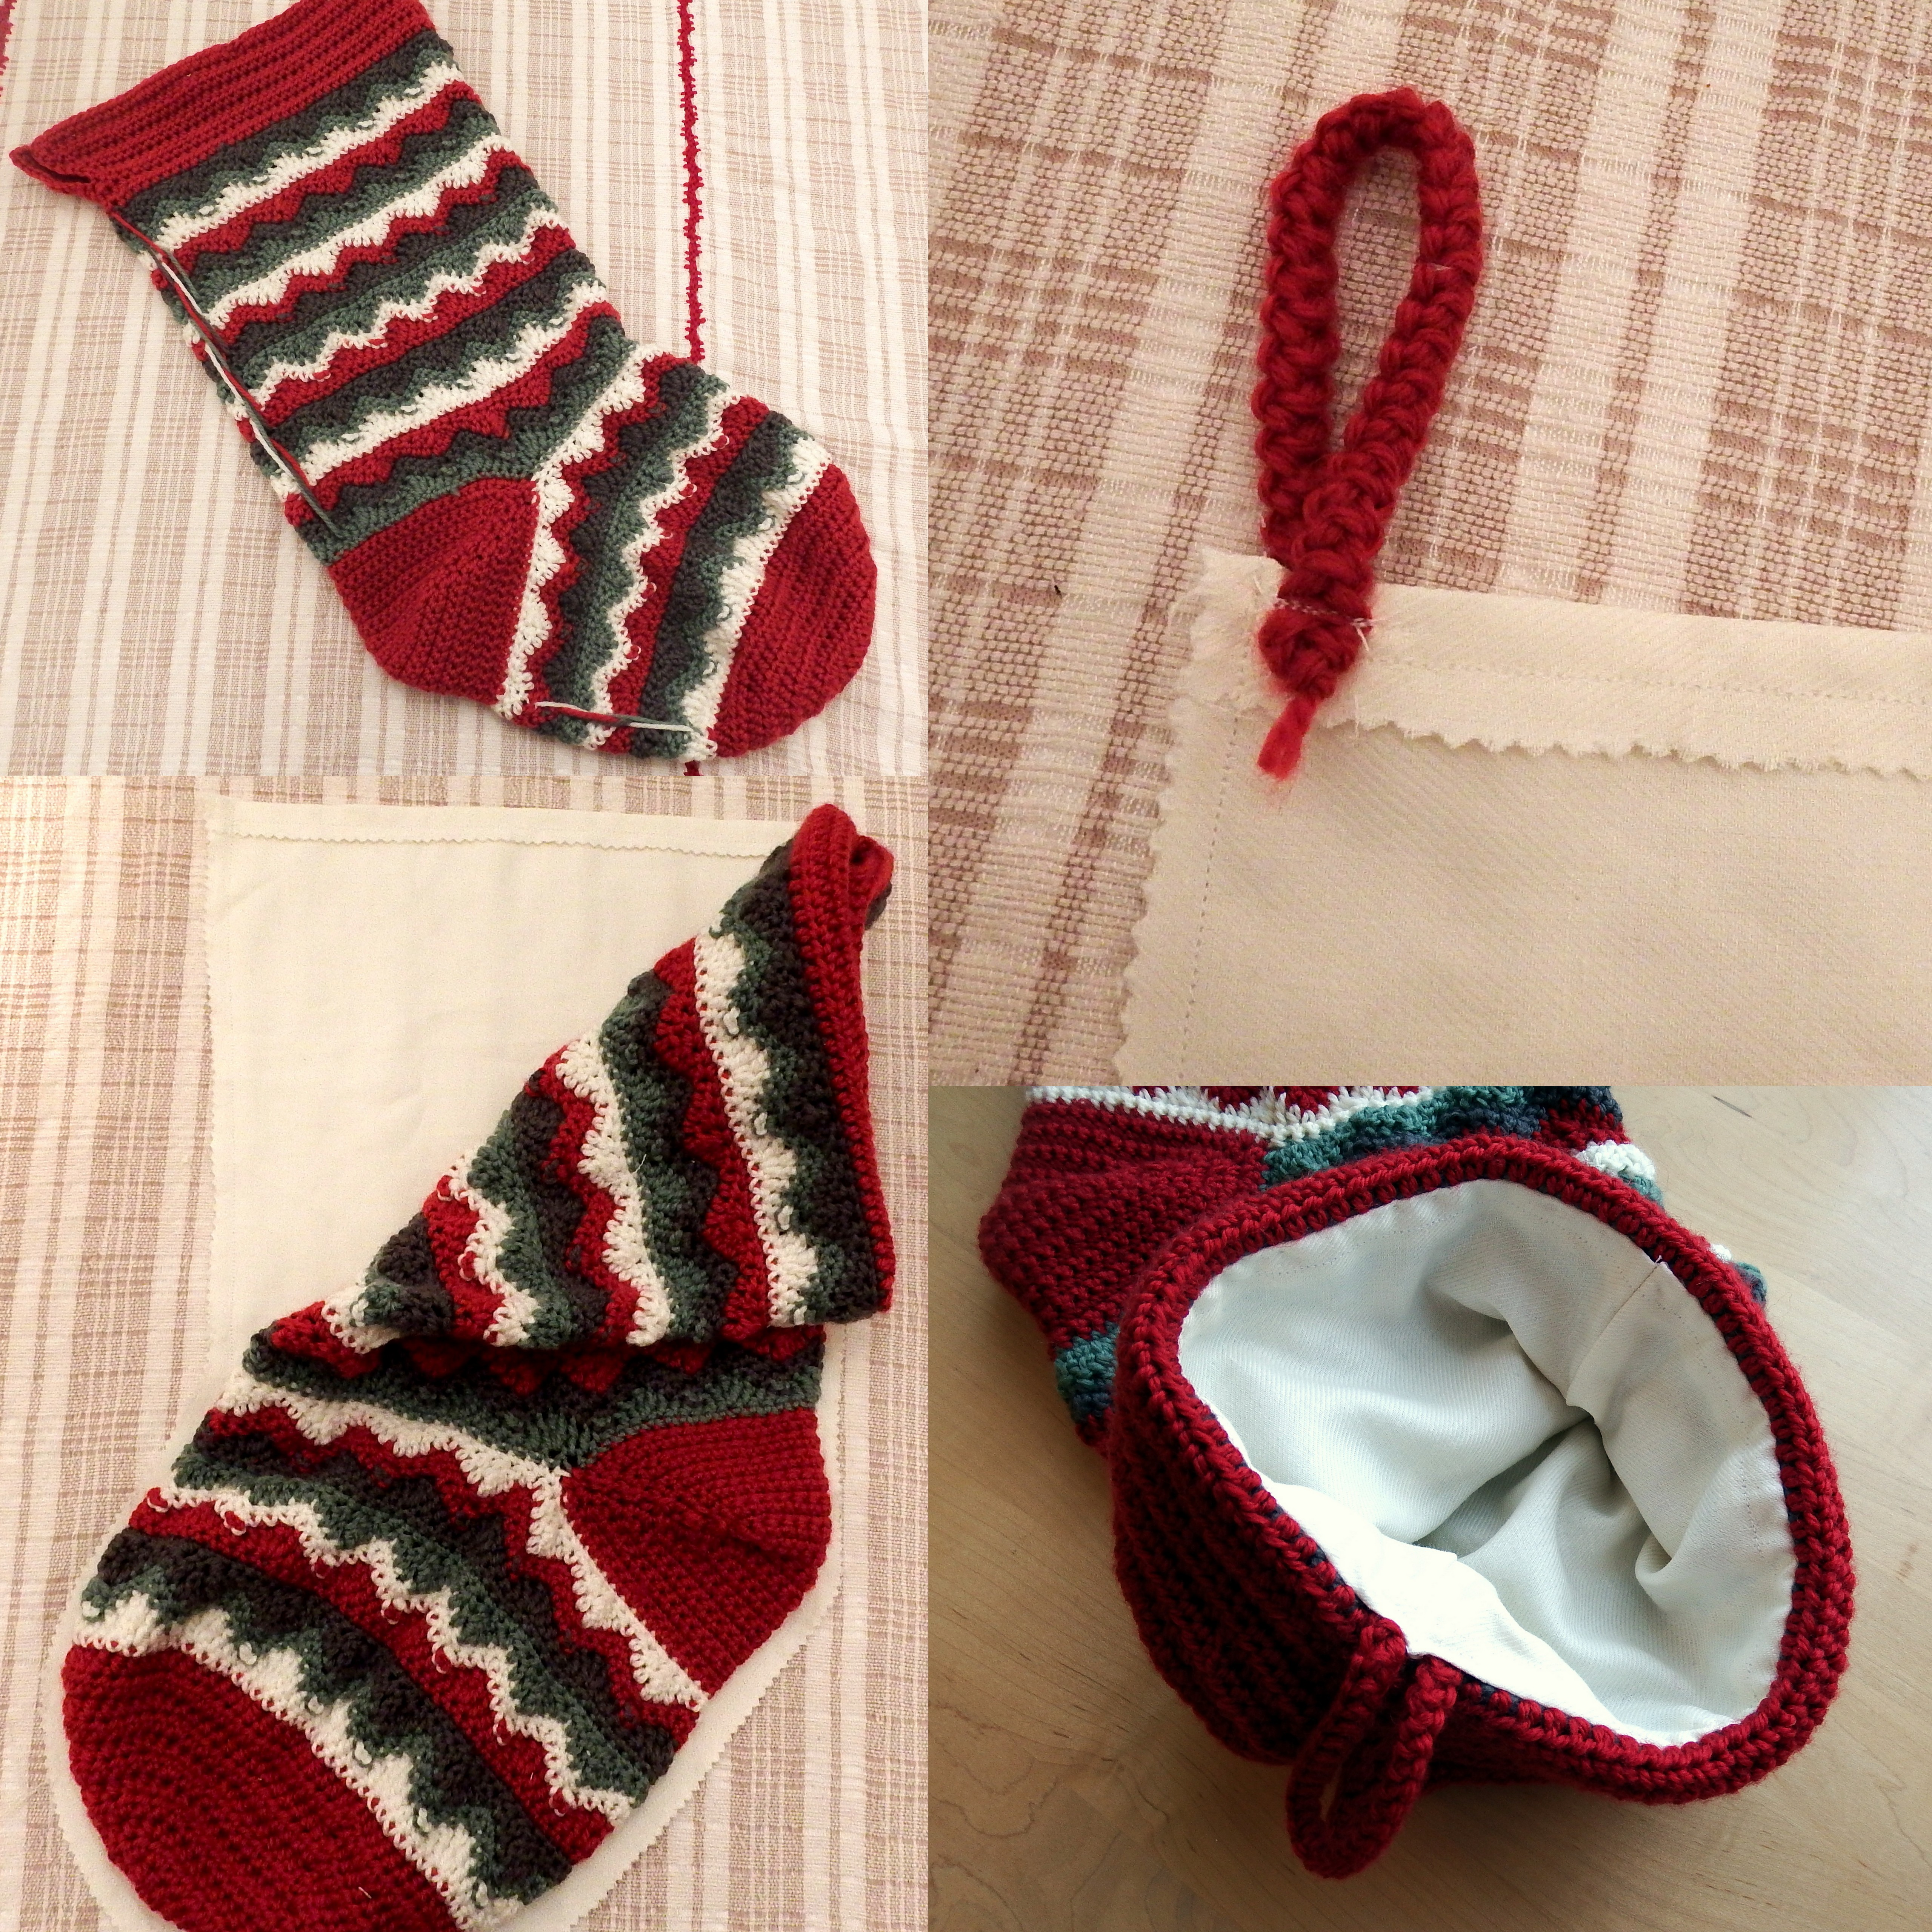 how to finish off a crochet christmas stocking - Crochet Christmas Stockings